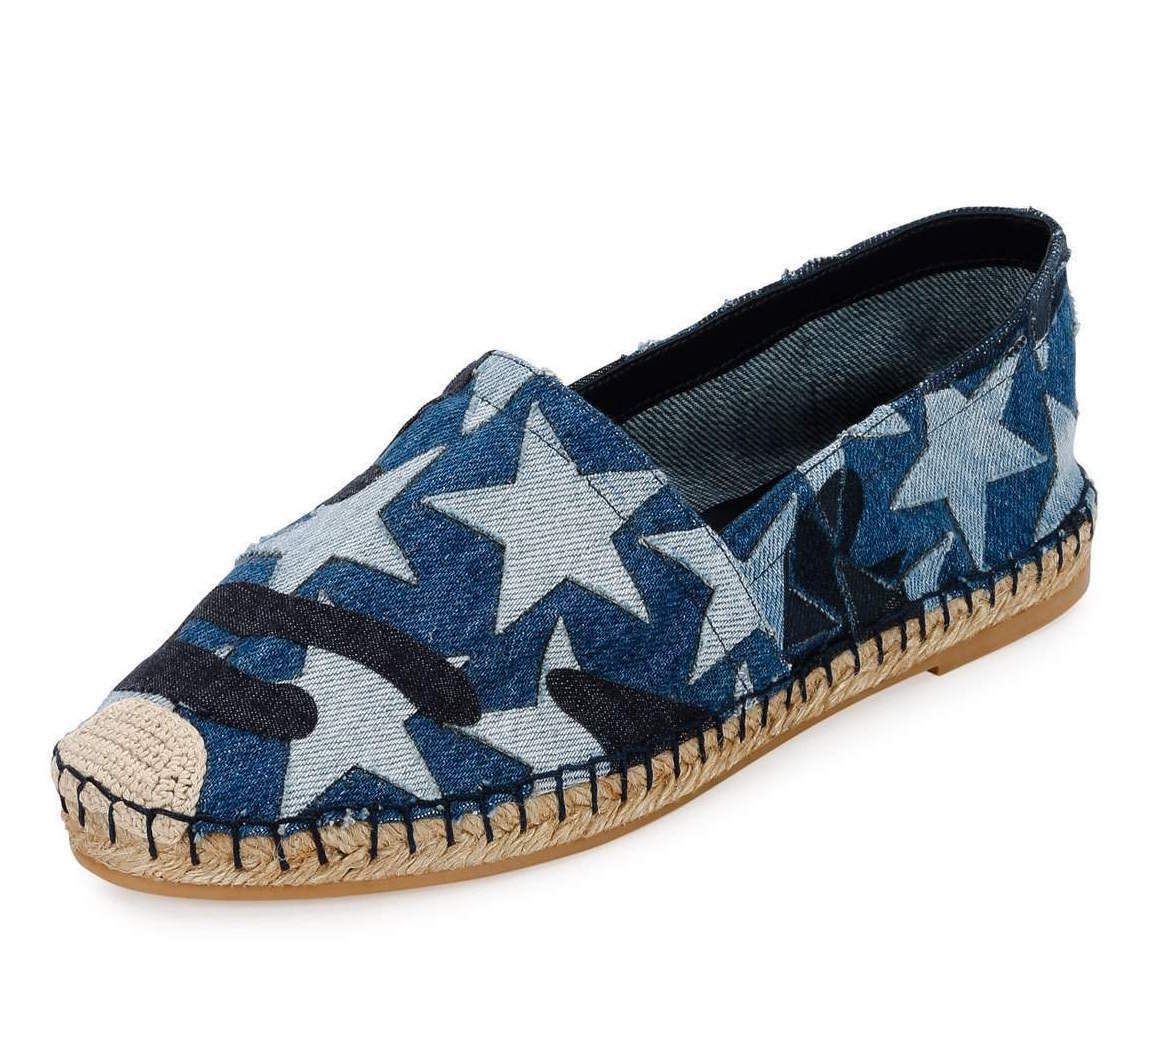 VALENTINO Star Denim Espadrille Flat, Light - Denim - Light NEW SIZE /US 9.5 8734ed